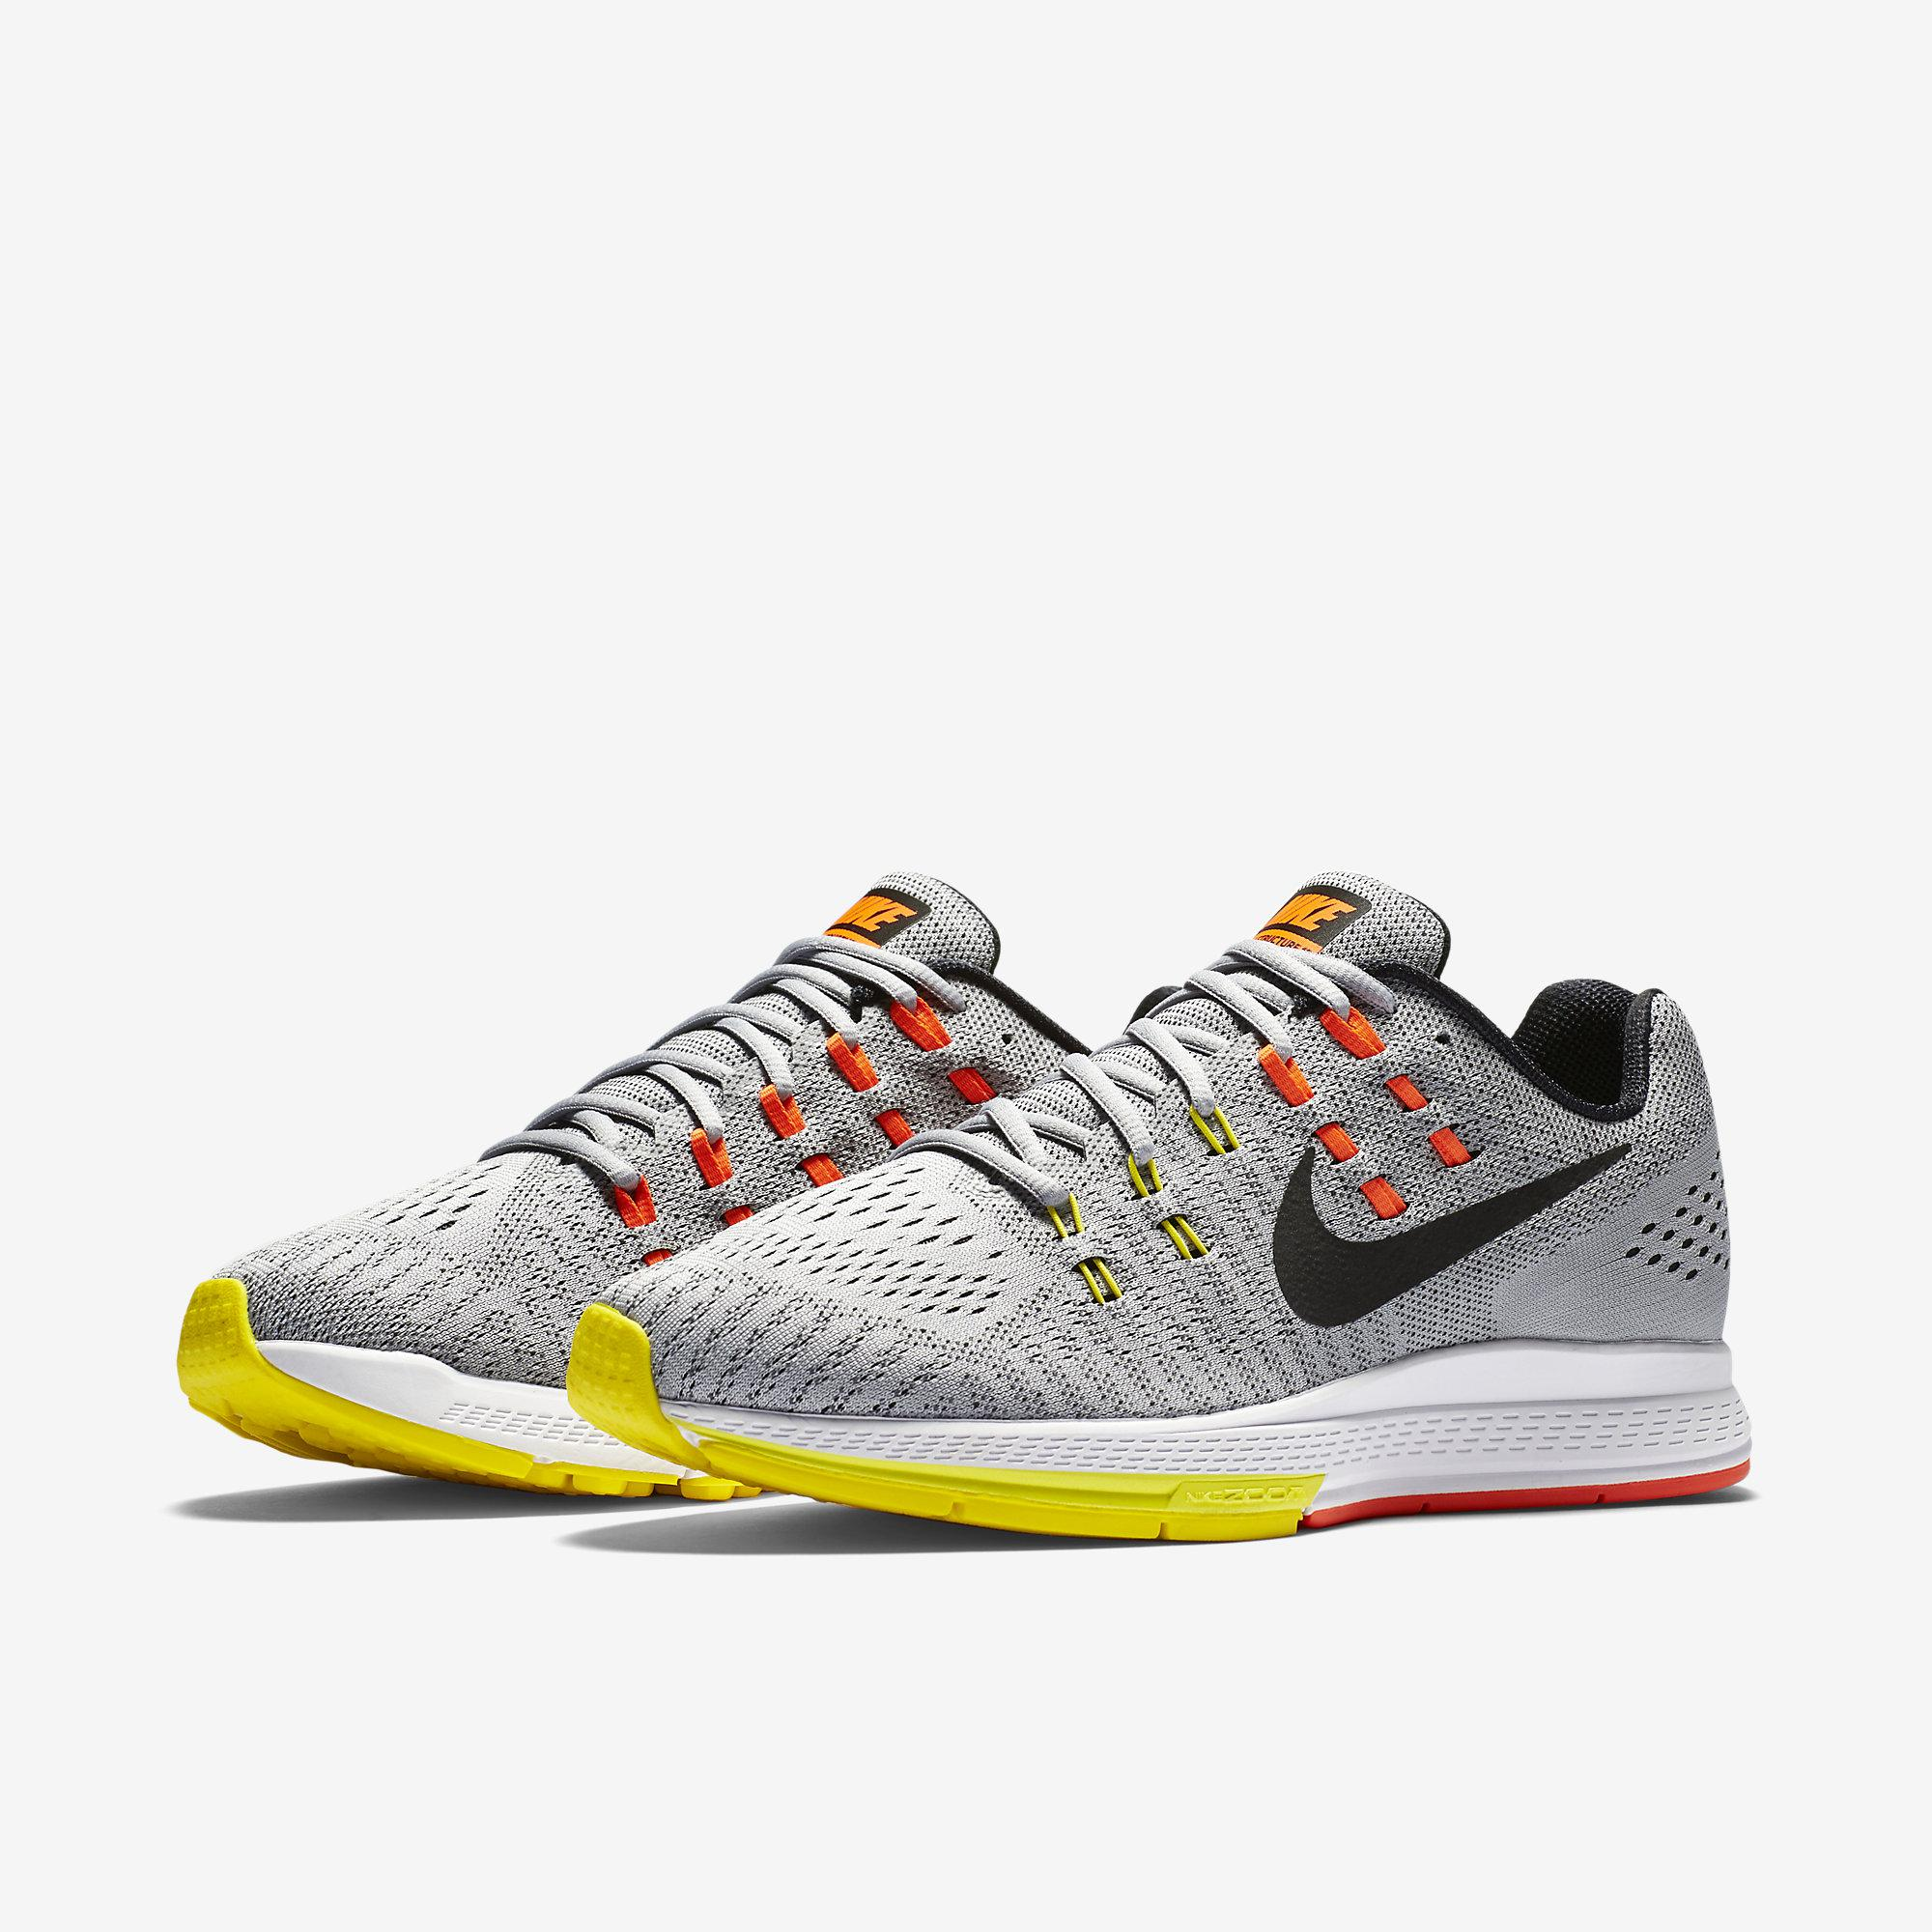 0f30f46fd93 Nike Mens Air Zoom Structure 19 Running Shoes - Grey Yellow ...